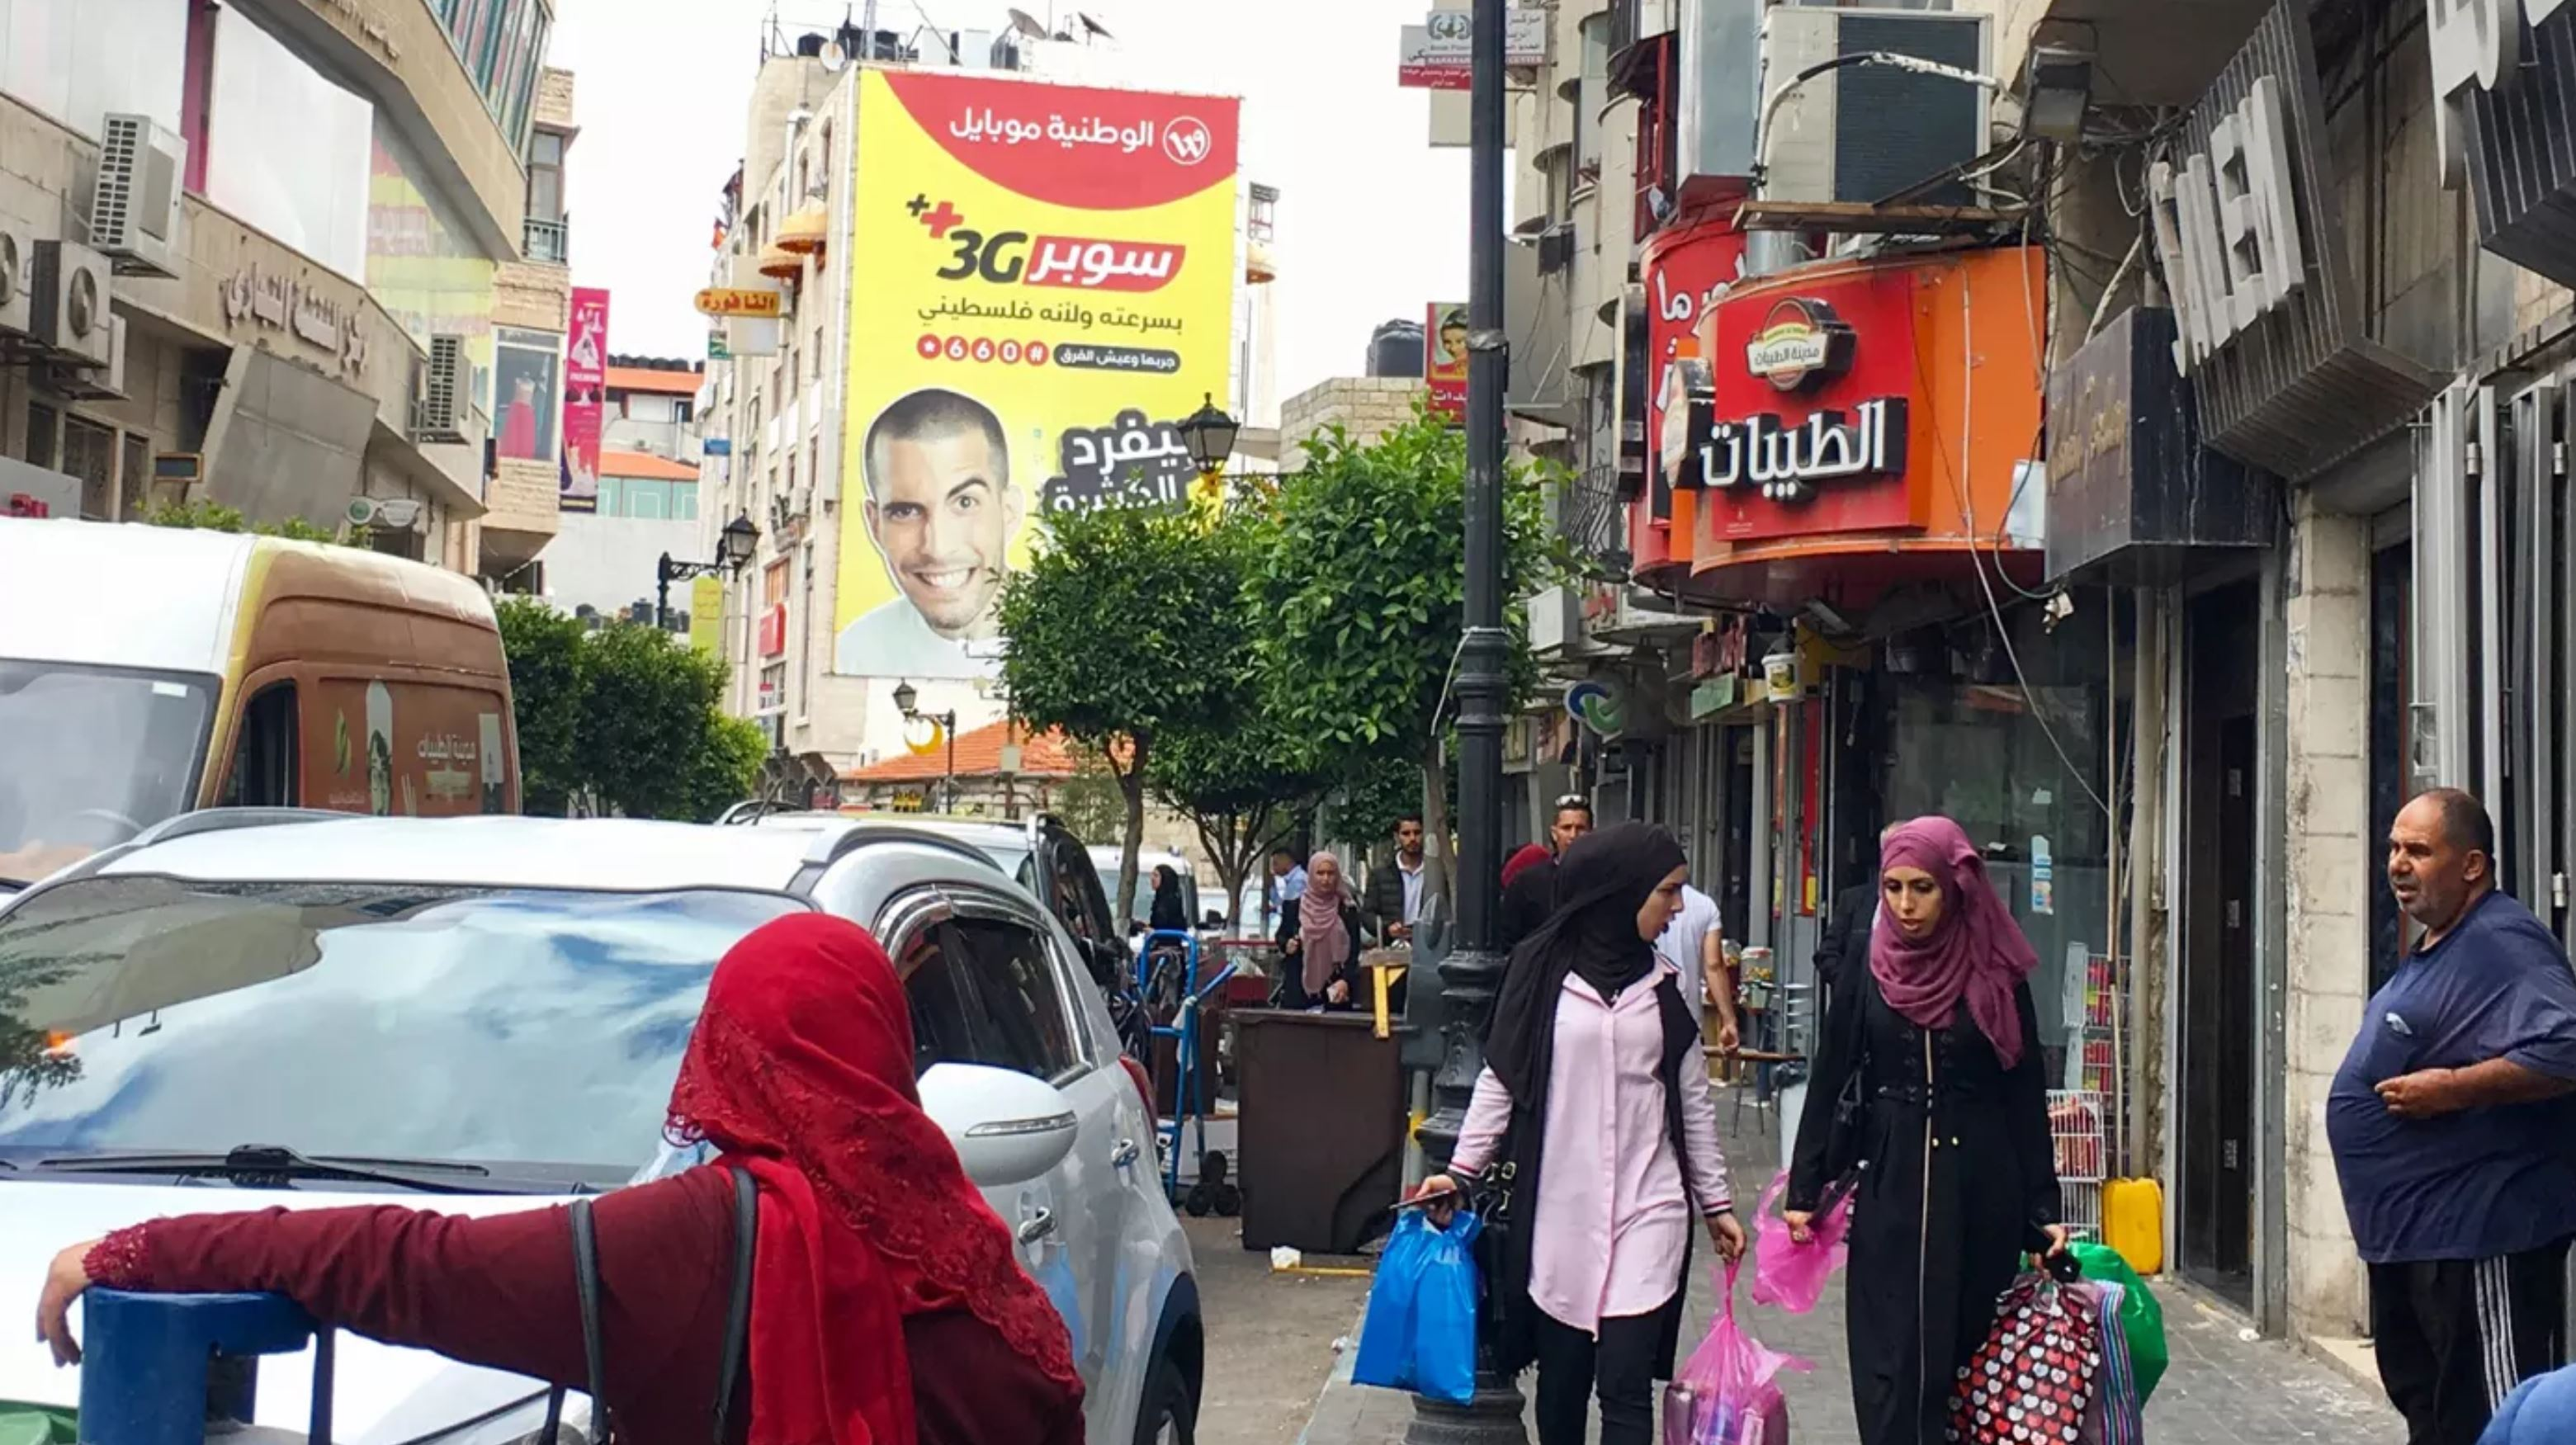 The West Bank now has 3G–can it boost the Palestinian tech sector?